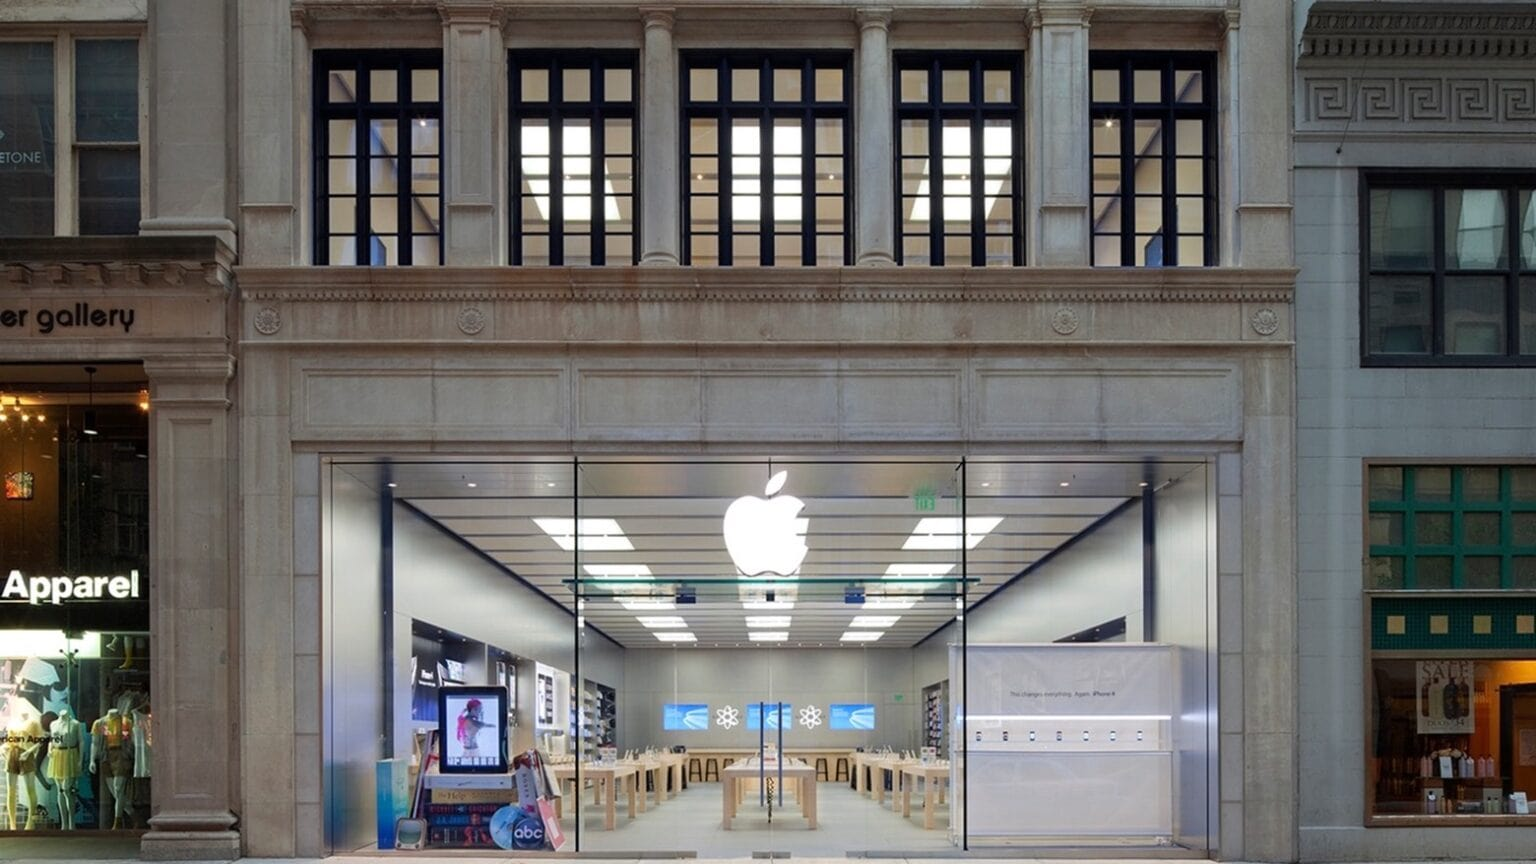 The Apple Store on Walnut Street in Philadelphia is closed